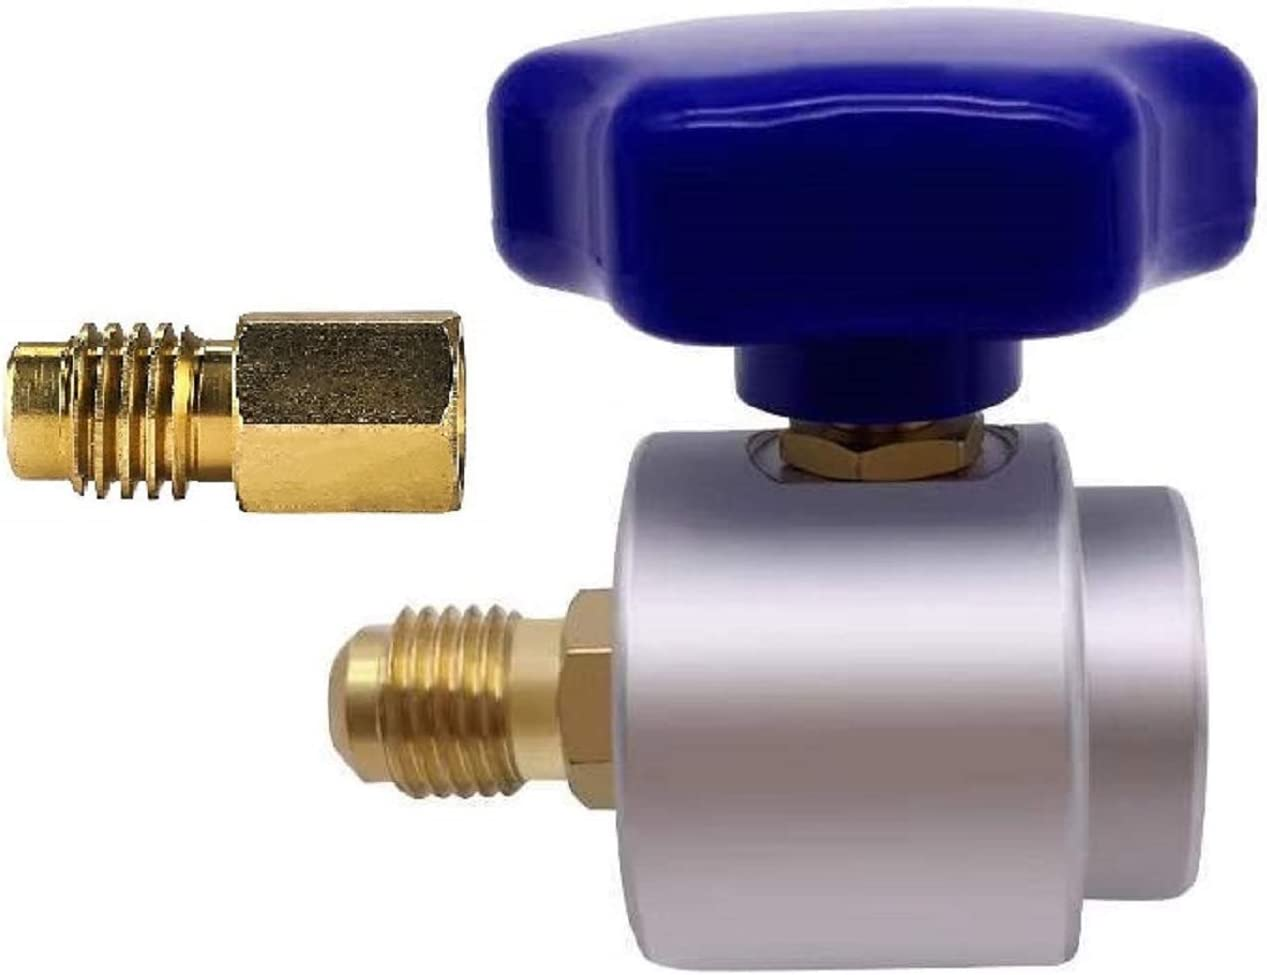 Boltigen Self Sealing R134A Can Tap Valve Refrigerant Dispenser with Tank Adapter for 1/4 and 1/2-inch AC Freon Charging Hose